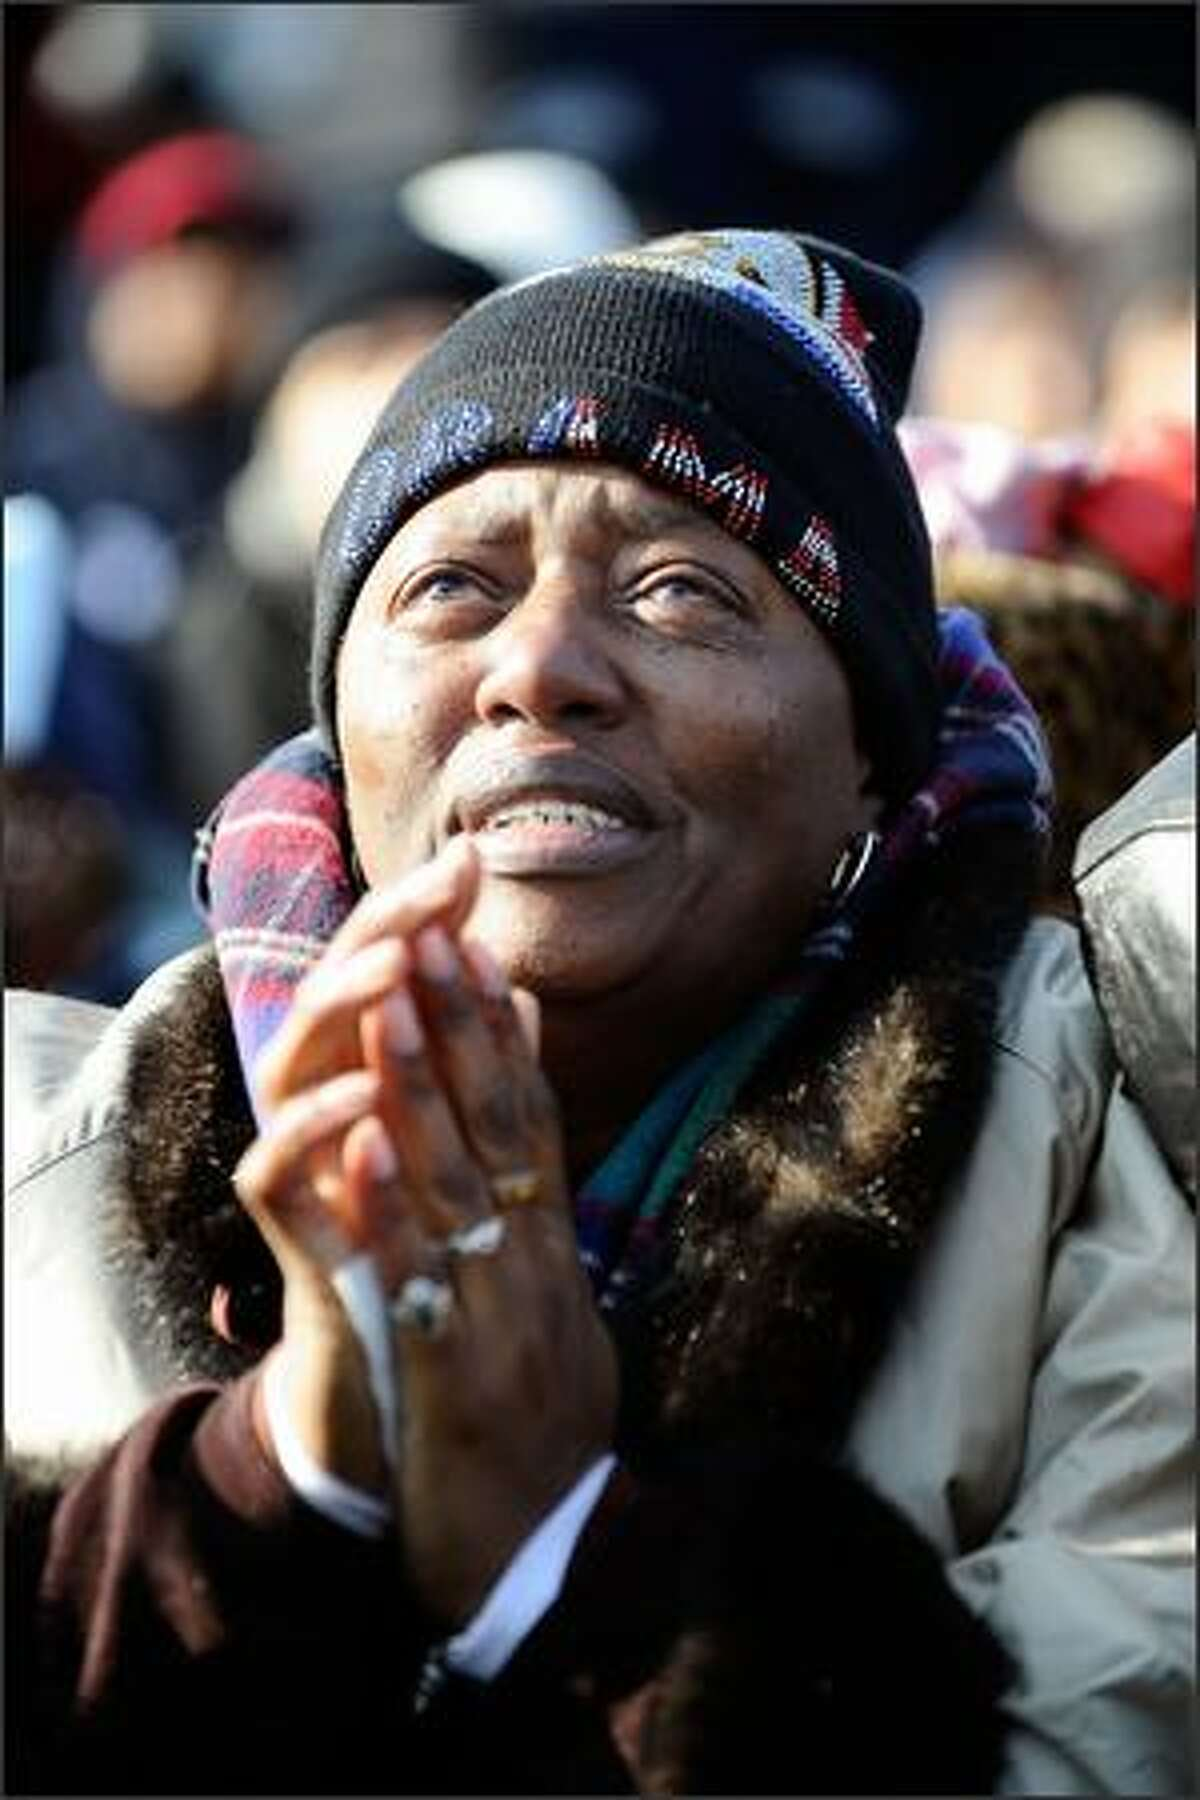 Patricia Brown of Atlanta, Georgia, reacts during the inauguration of Barack Obama as the 44th President of the United States on the National Mall, Jan. 20, 2009 in Washington, D.C.